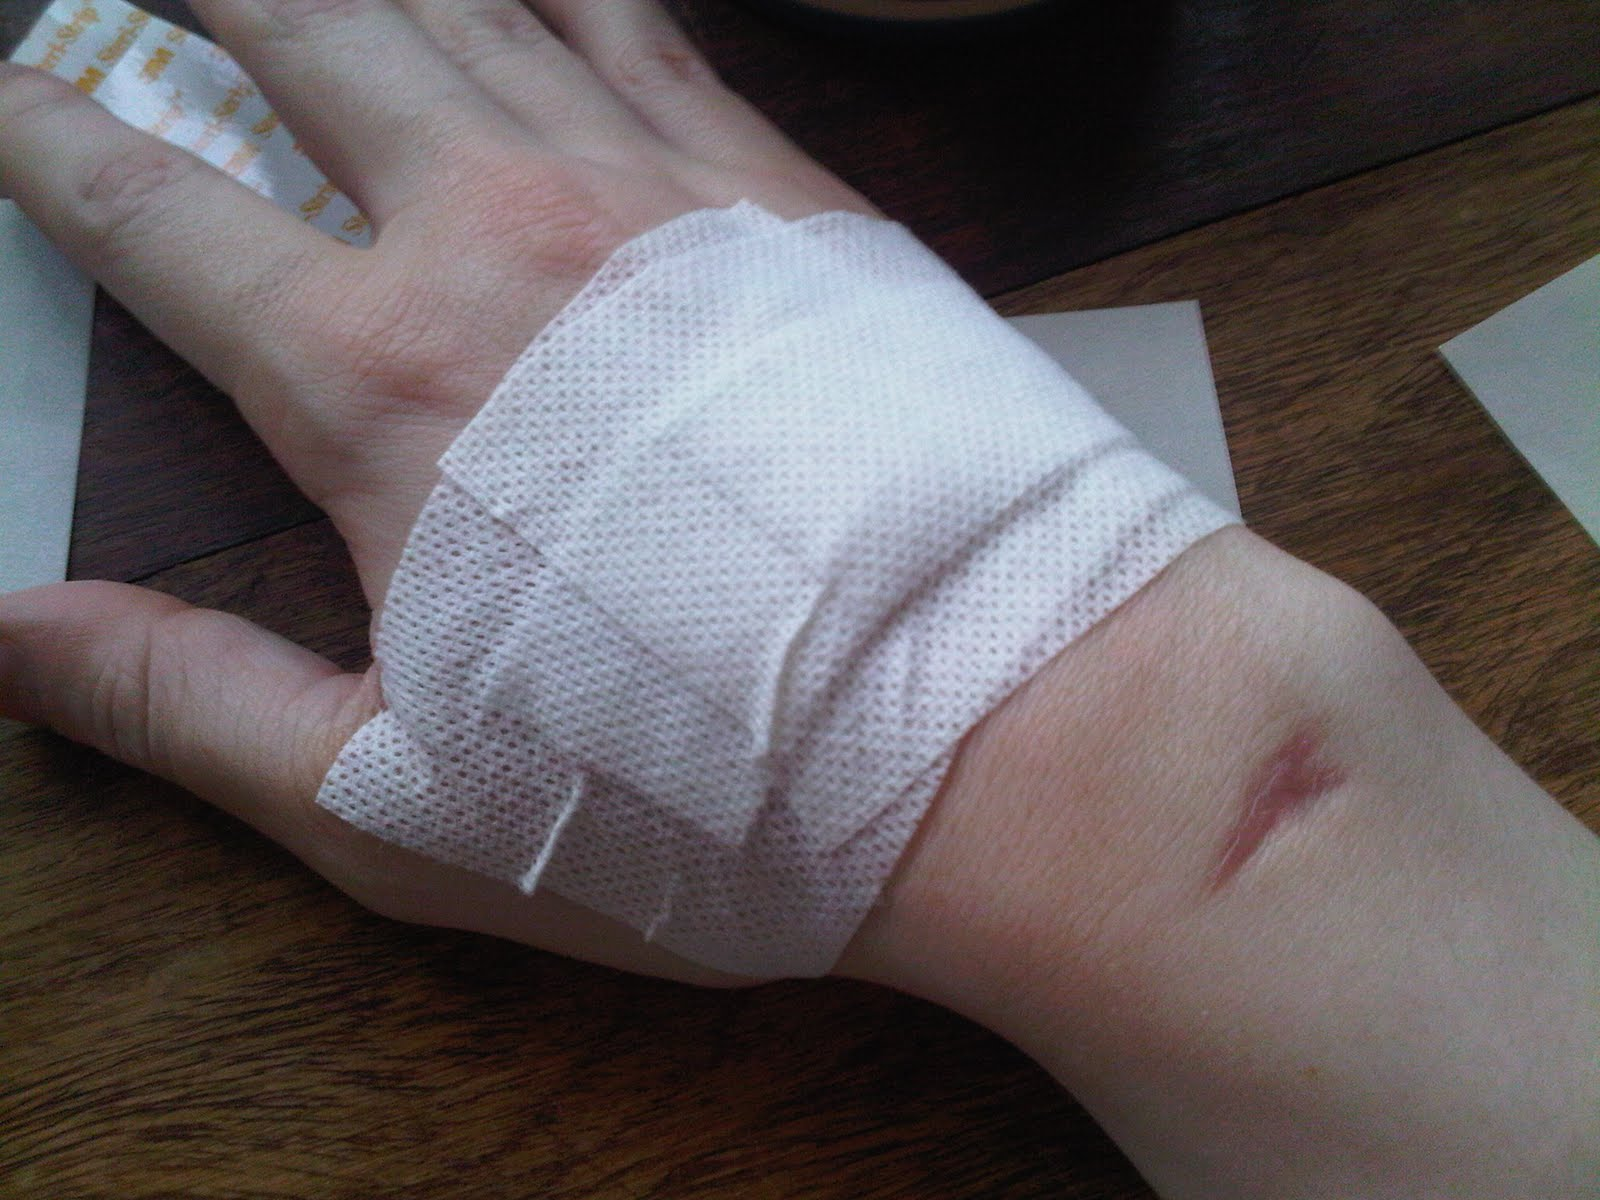 and here's the hand all bandaged up with some totally unnecessary ...